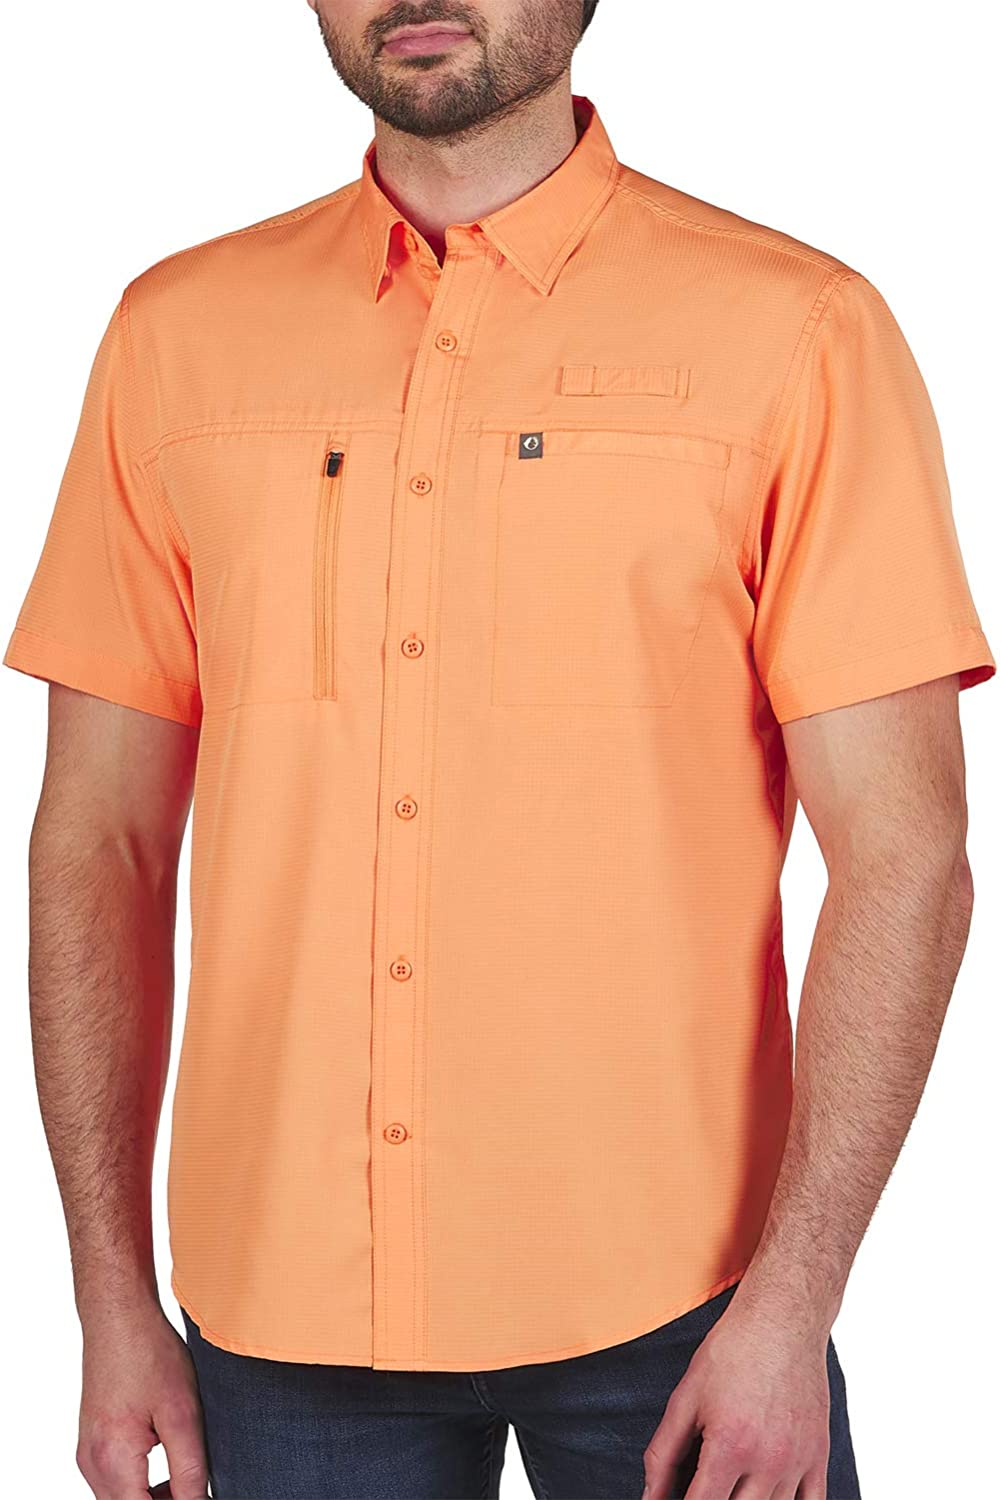 Indian River Fishing Shirt for Men UPF 40 Sun Protection with Quick Dry Technology